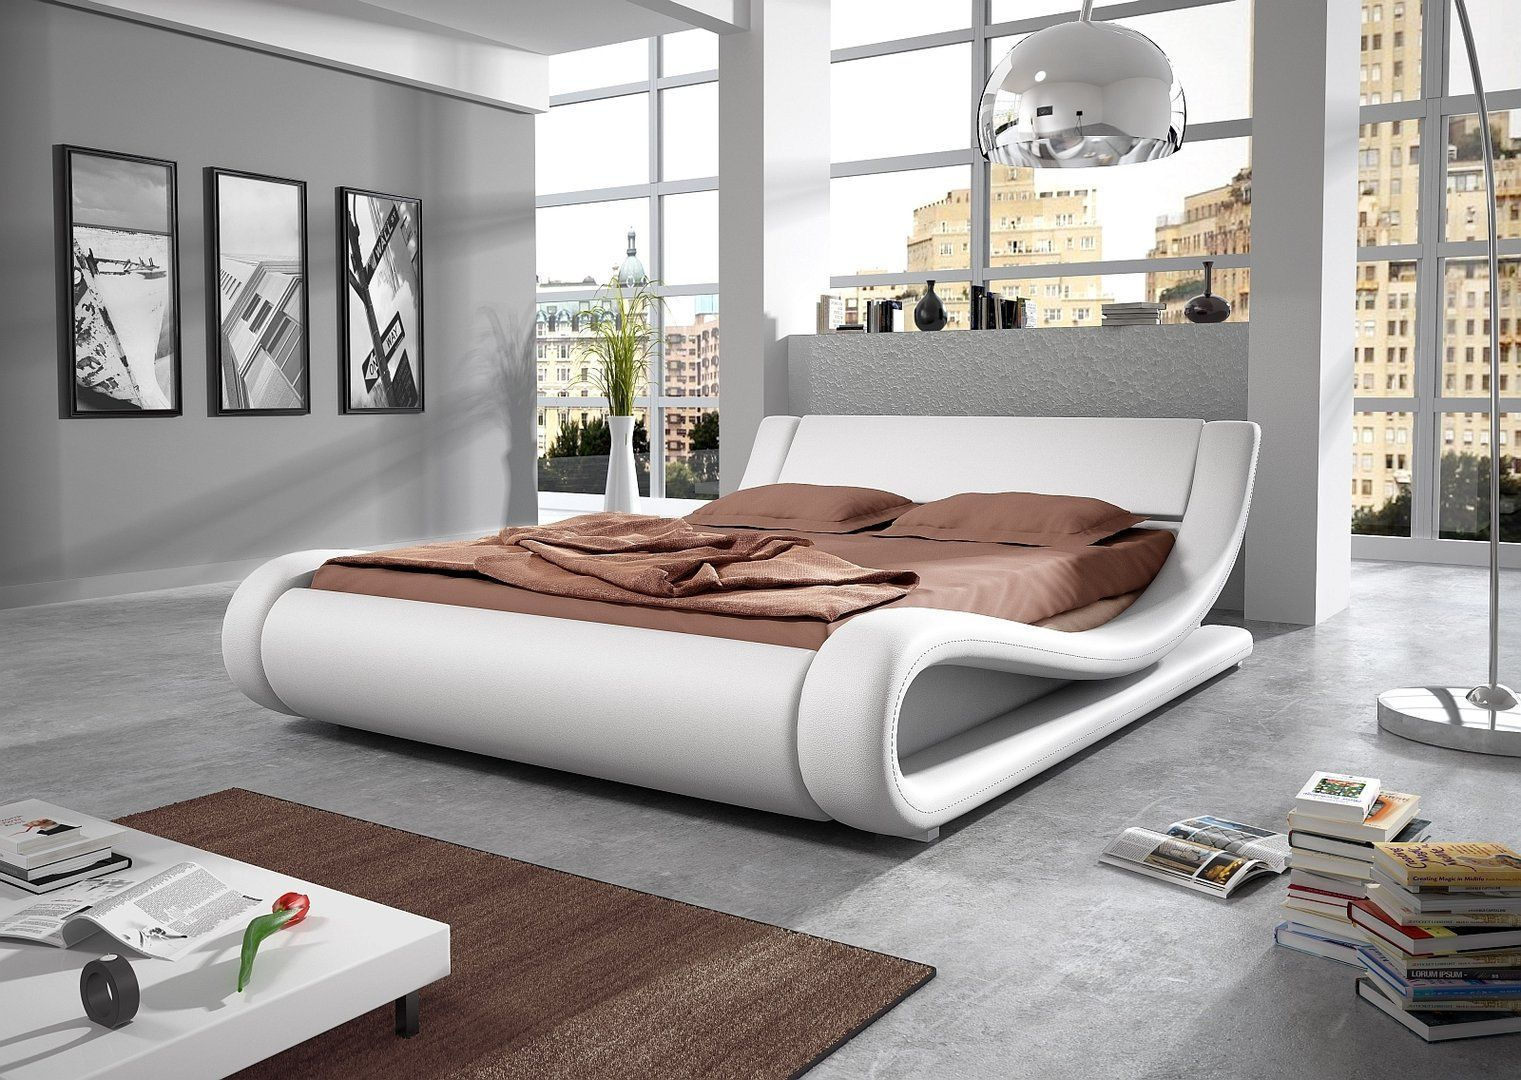 Bedroom Unique Bed Design Erotic Bed Design Unique Bed Designs